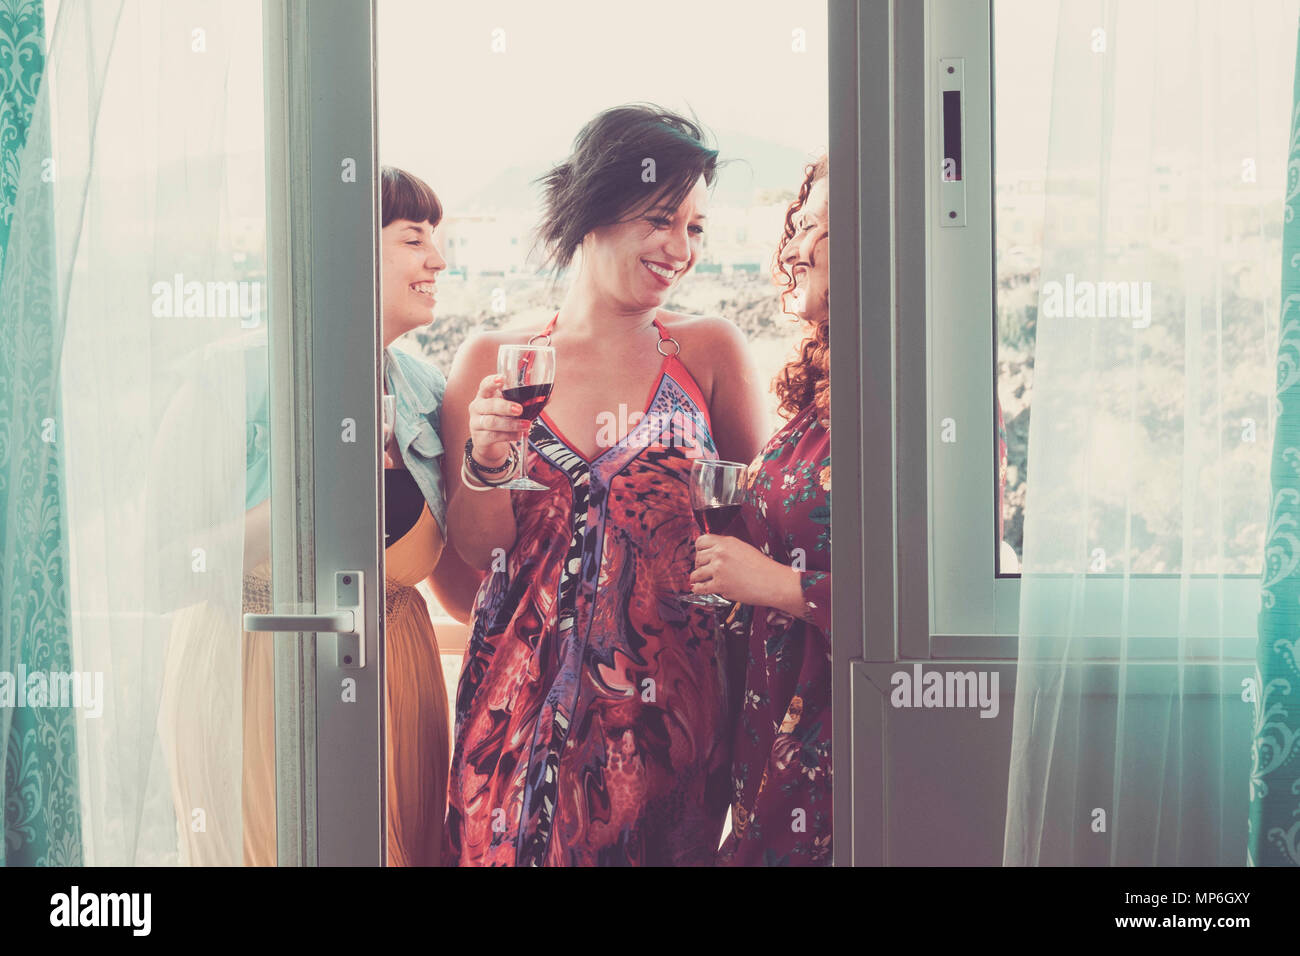 group of three caucasian beautiful friends woman females at home celebrate and in nice leisure activity. friendship with smiles and enjoying the time  - Stock Image